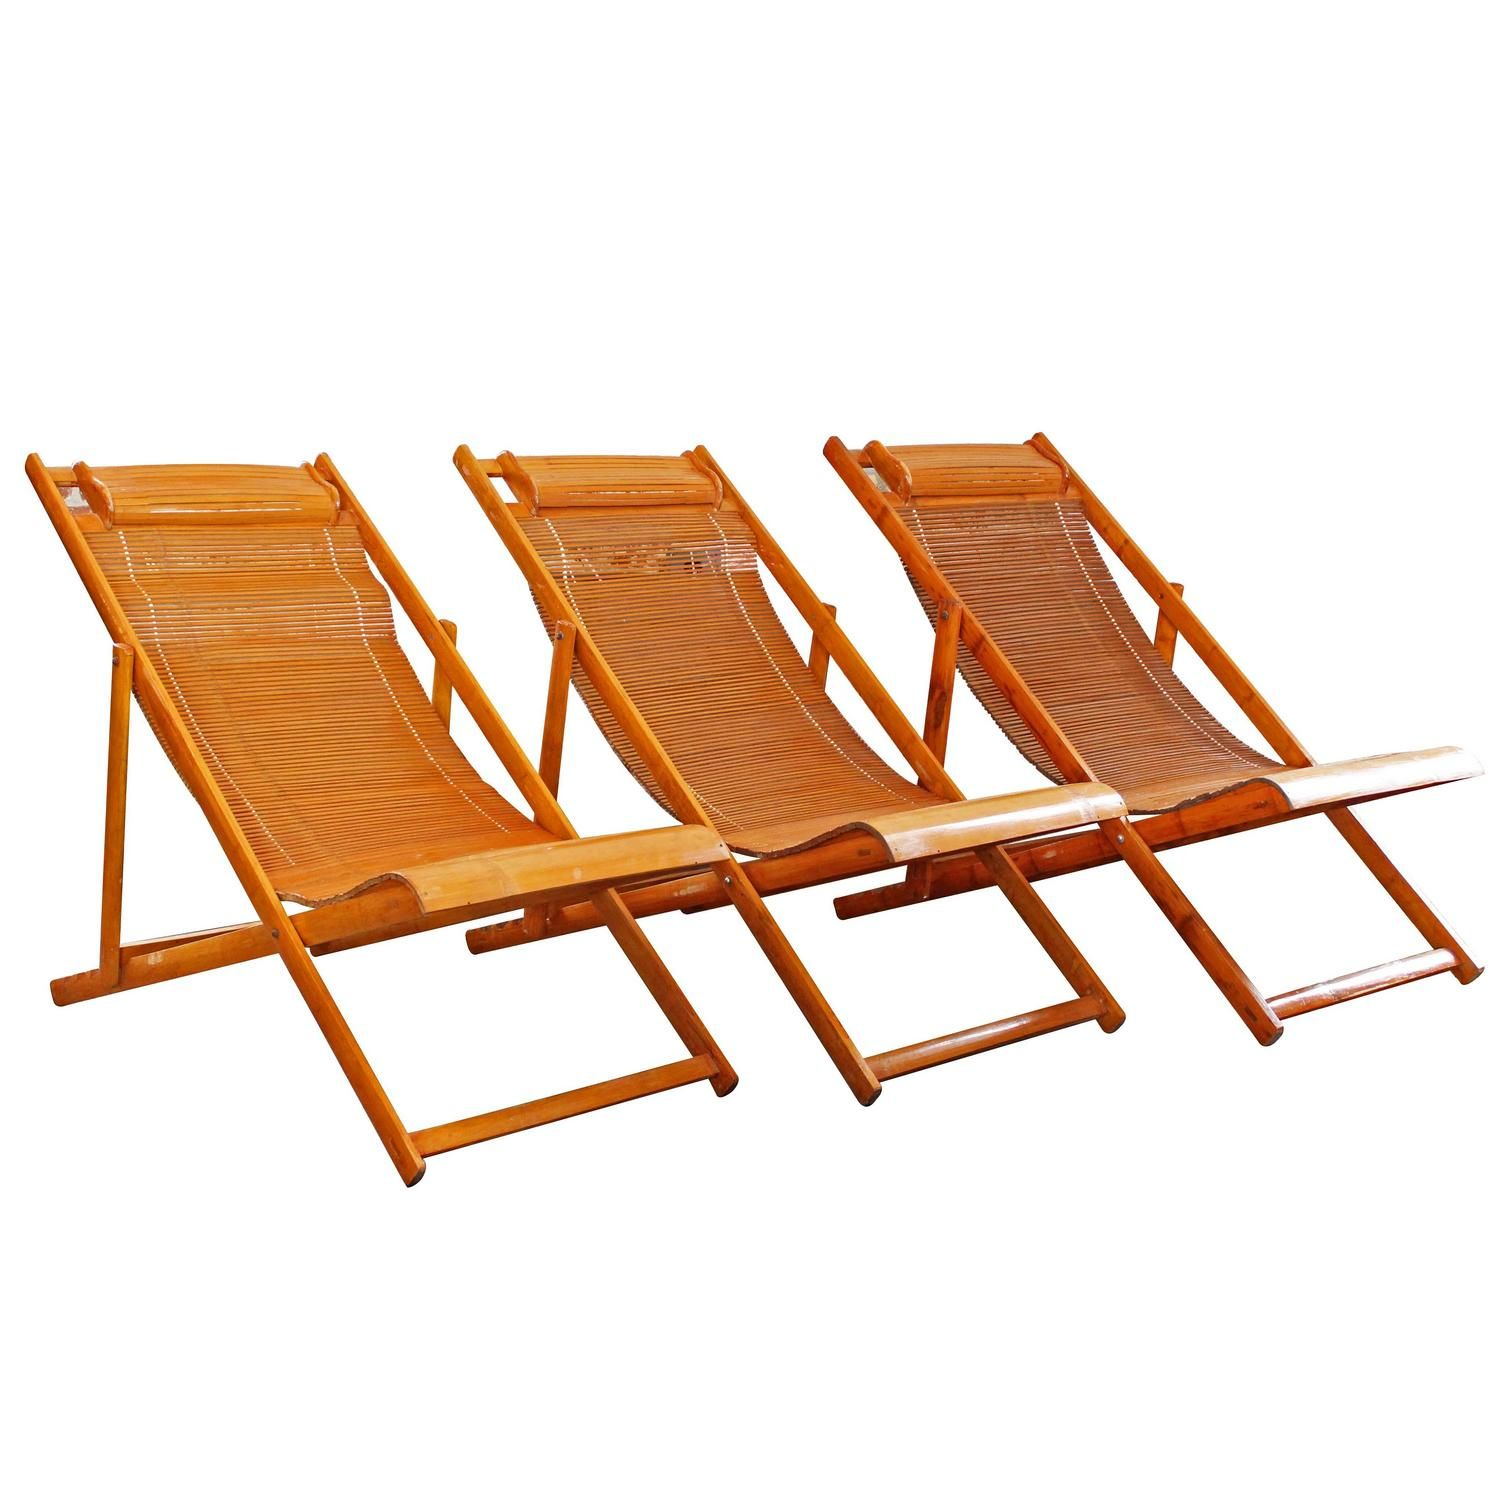 Vintage Bamboo Wood Japanese Deck Chairs, Outdoor Fold Up Lounge Chairs |  From A Unique